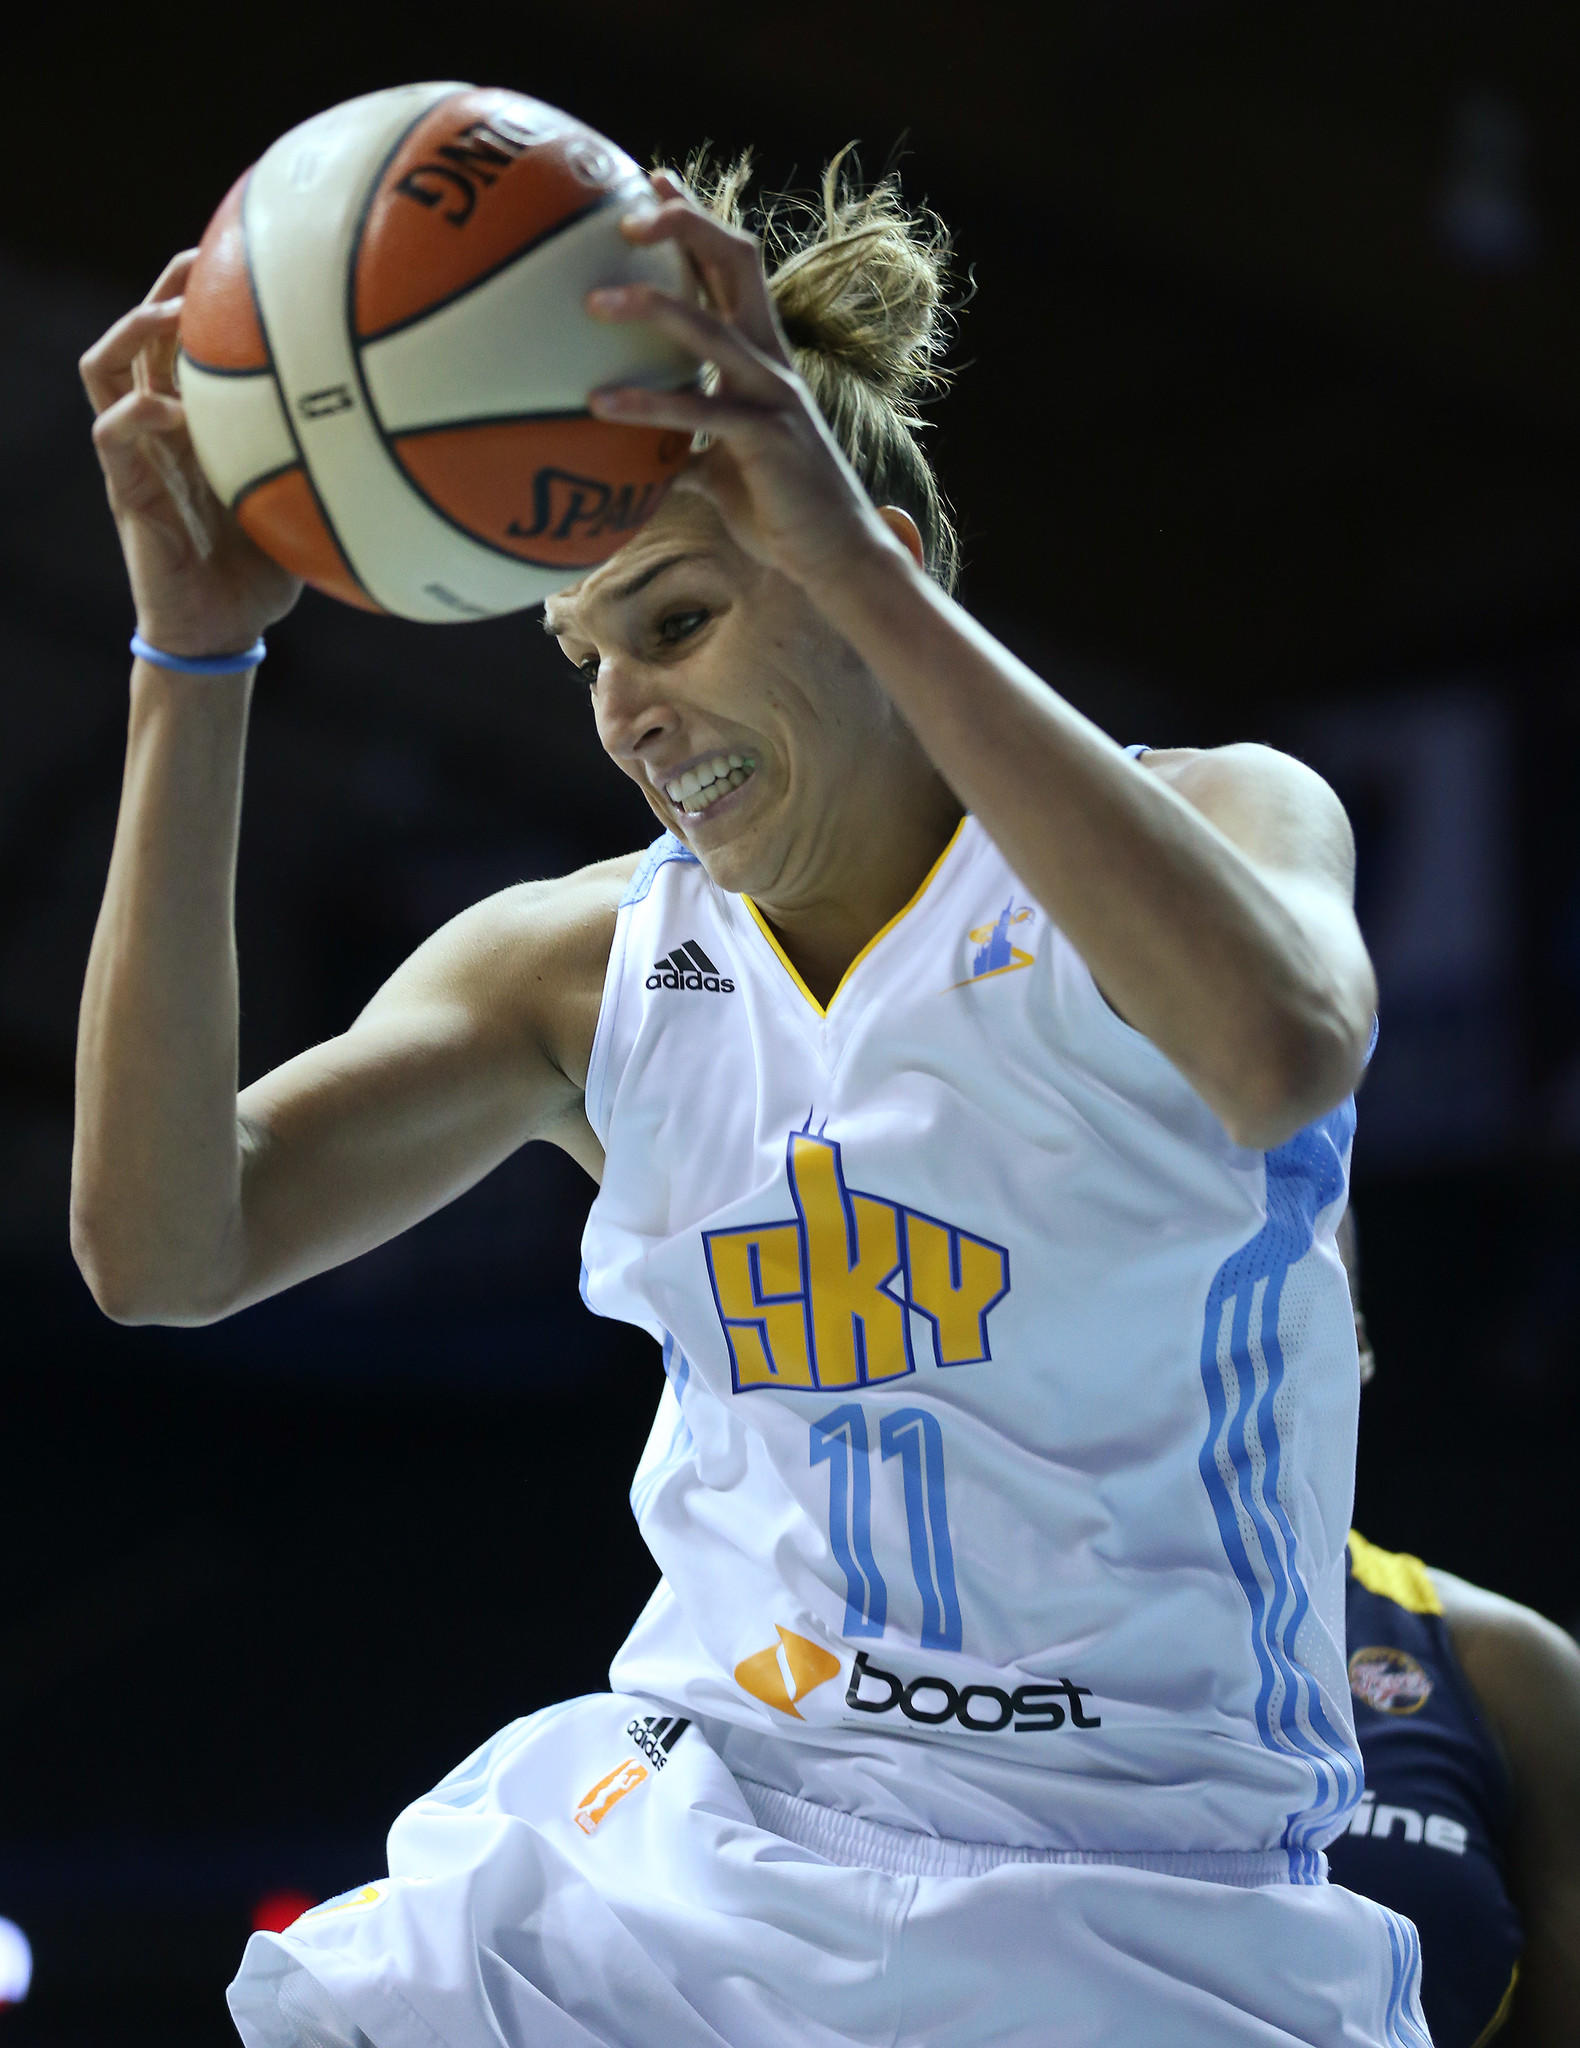 Elena Delle Donne of the Sky grabs a rebound in the first quarter of game 1 of the WNBA Playoffs first round at the Allstate Arena Friday, Sept. 20, 2013, in Rosemont. (John J. Kim / Chicago Tribune) B583205774Z.1 ....OUTSIDE TRIBUNE CO.- NO MAGS, NO SALES, NO INTERNET, NO TV, NEW YORK TIMES OUT, CHICAGO OUT, NO DIGITAL MANIPULATION... ORG XMIT: CHI1309202108314315